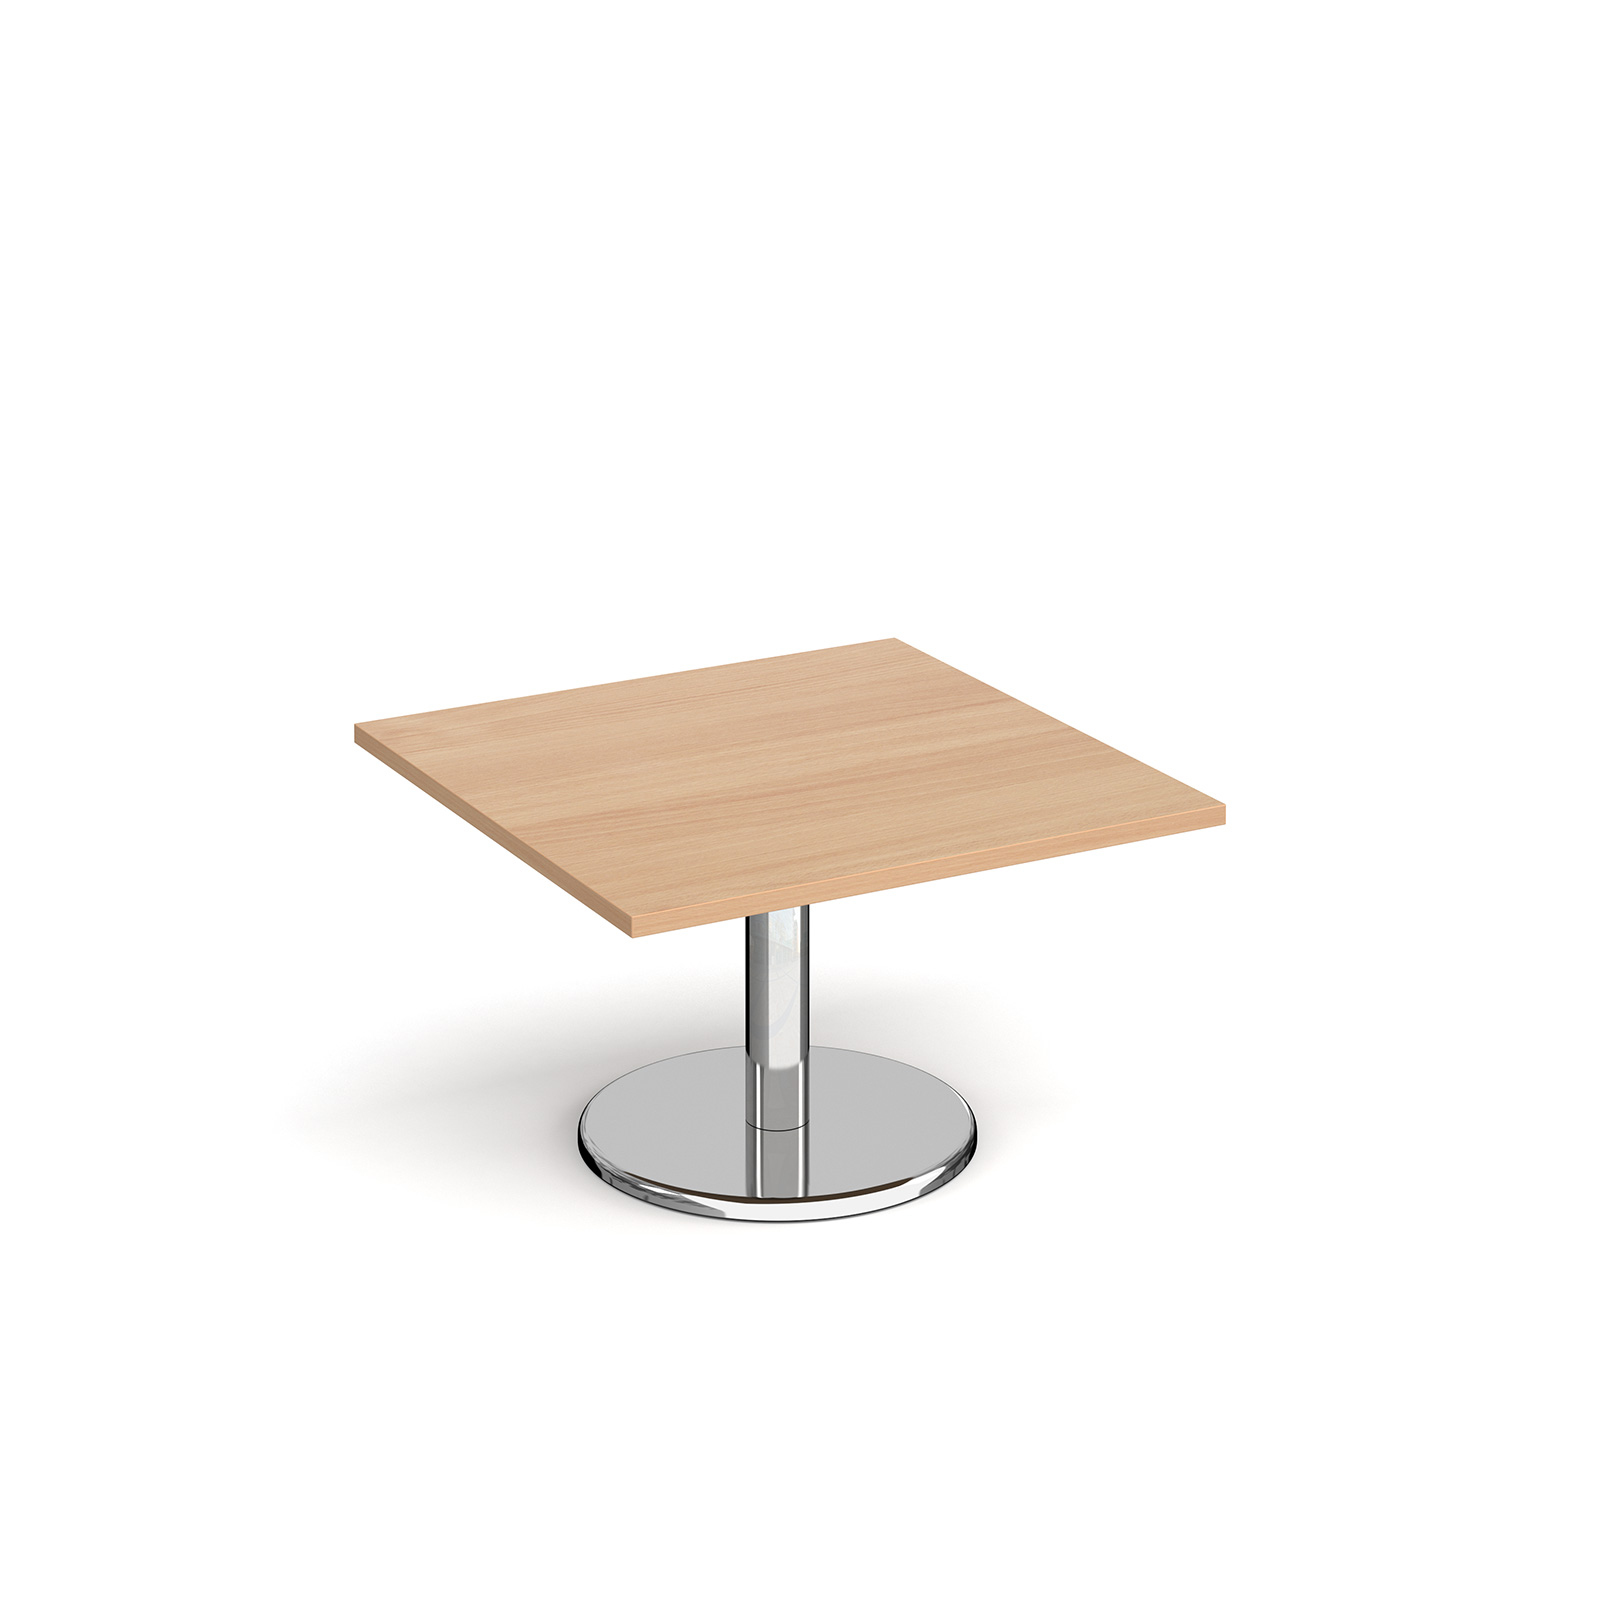 Pisa square coffee table with round base